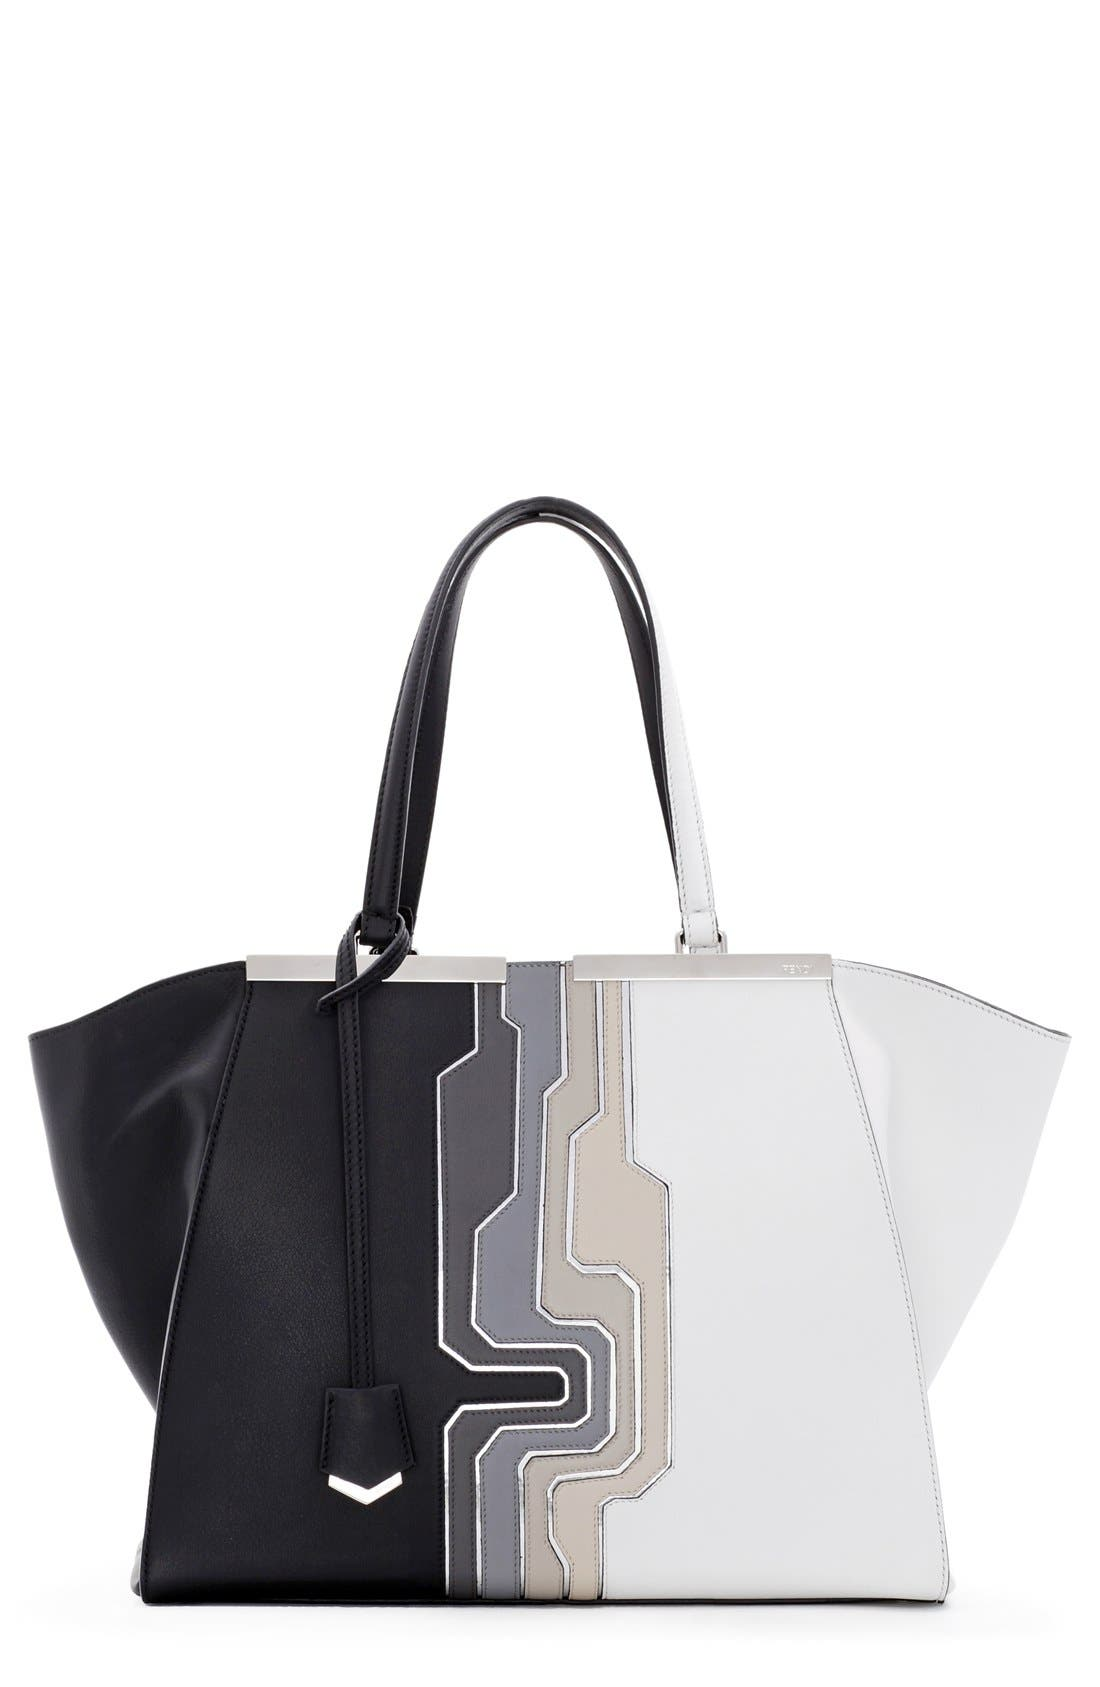 Alternate Image 1 Selected - Fendi '3Jours - Computer' Leather Shopper